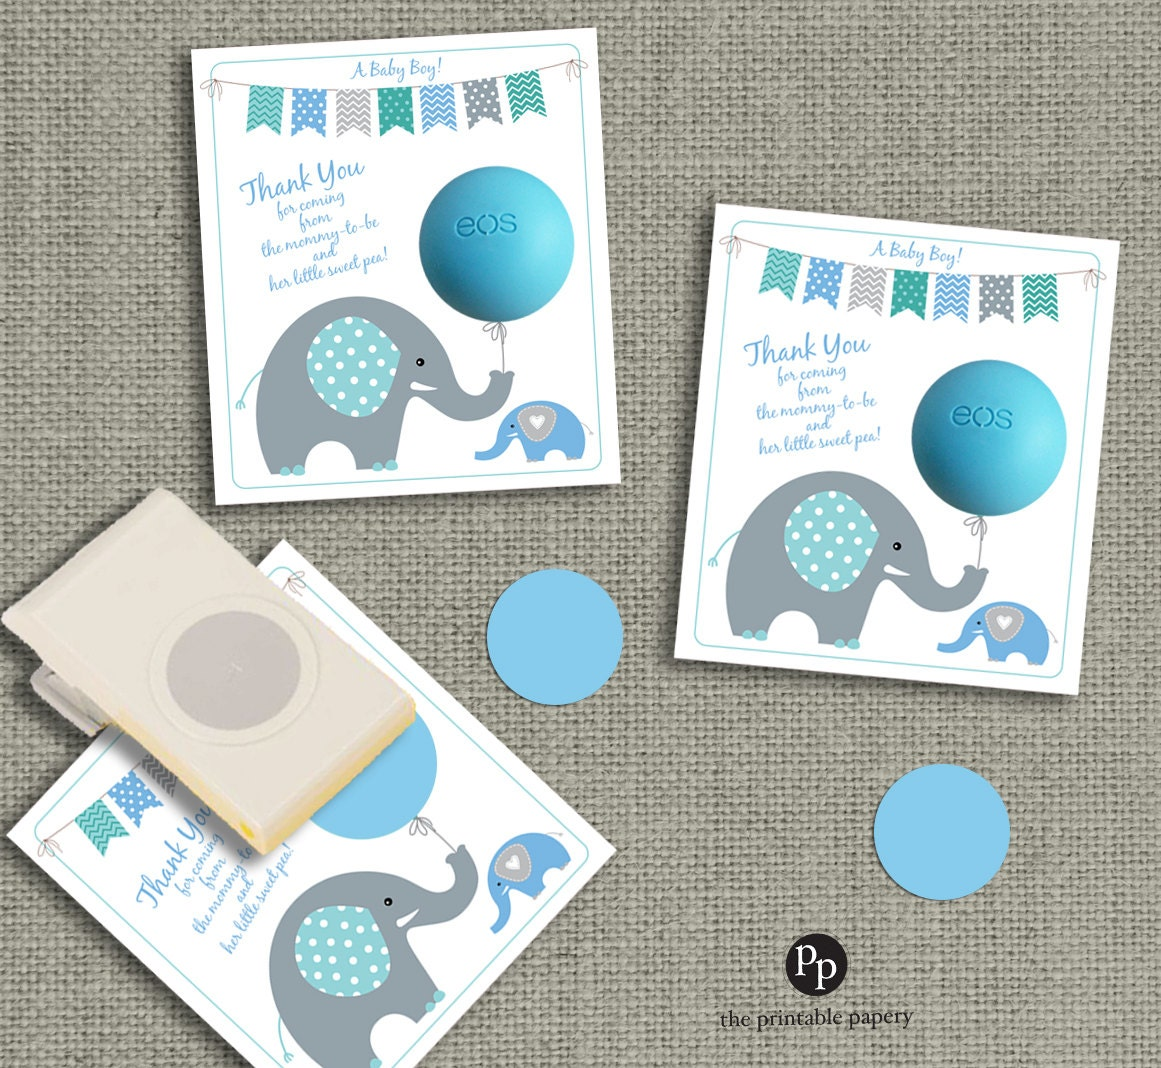 Baby Shower Gift Tags for EOS lip balm gifts by ThePrintablePapery